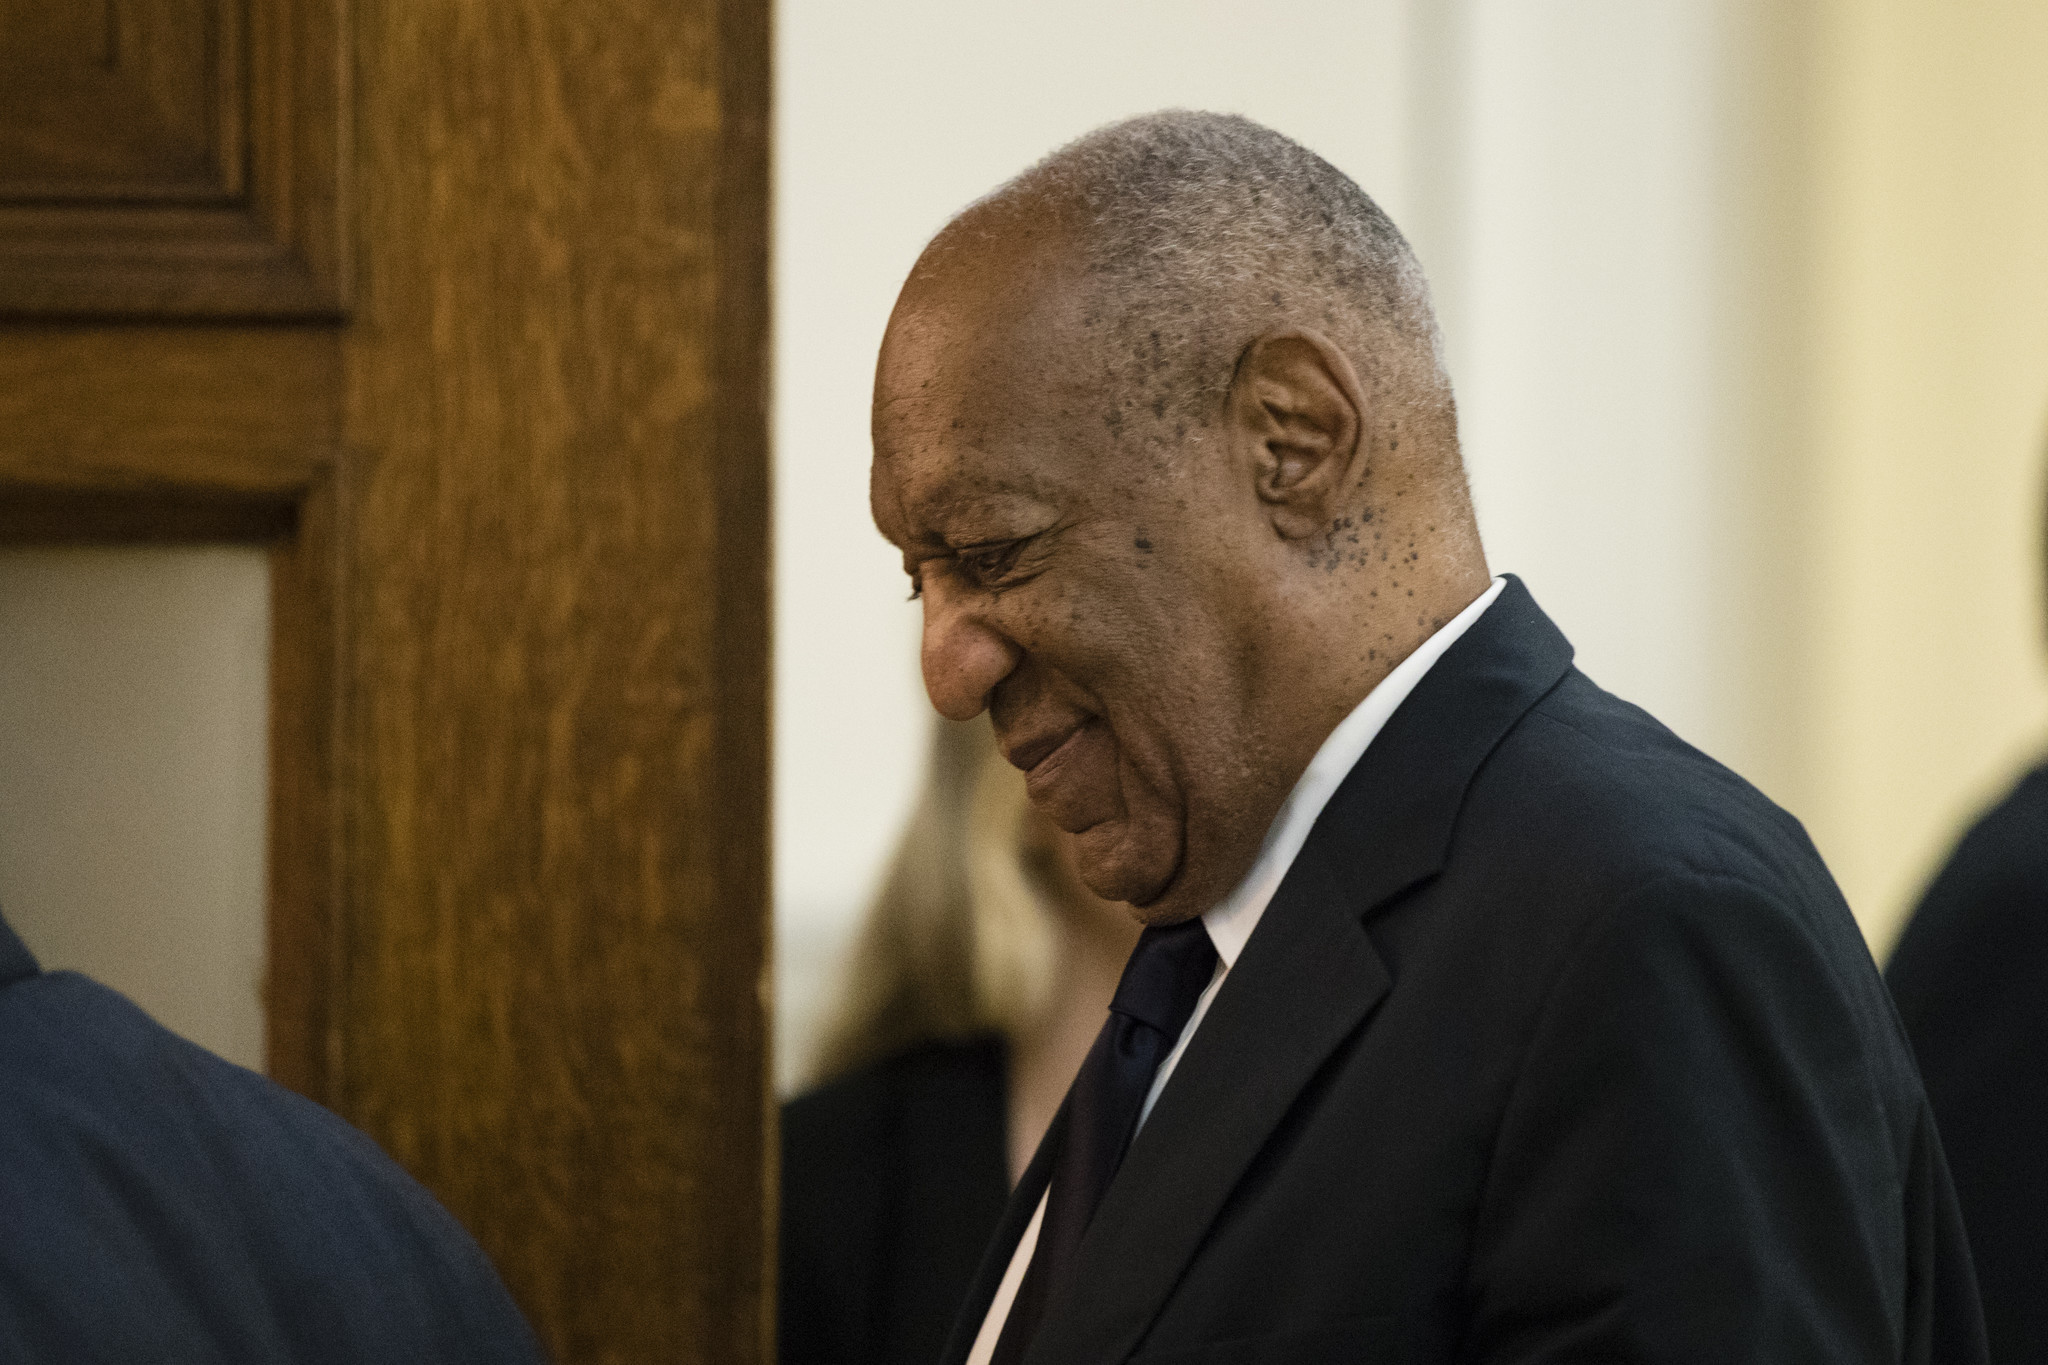 Jury in Bill Cosby sexual assault trial says it is deadlocked